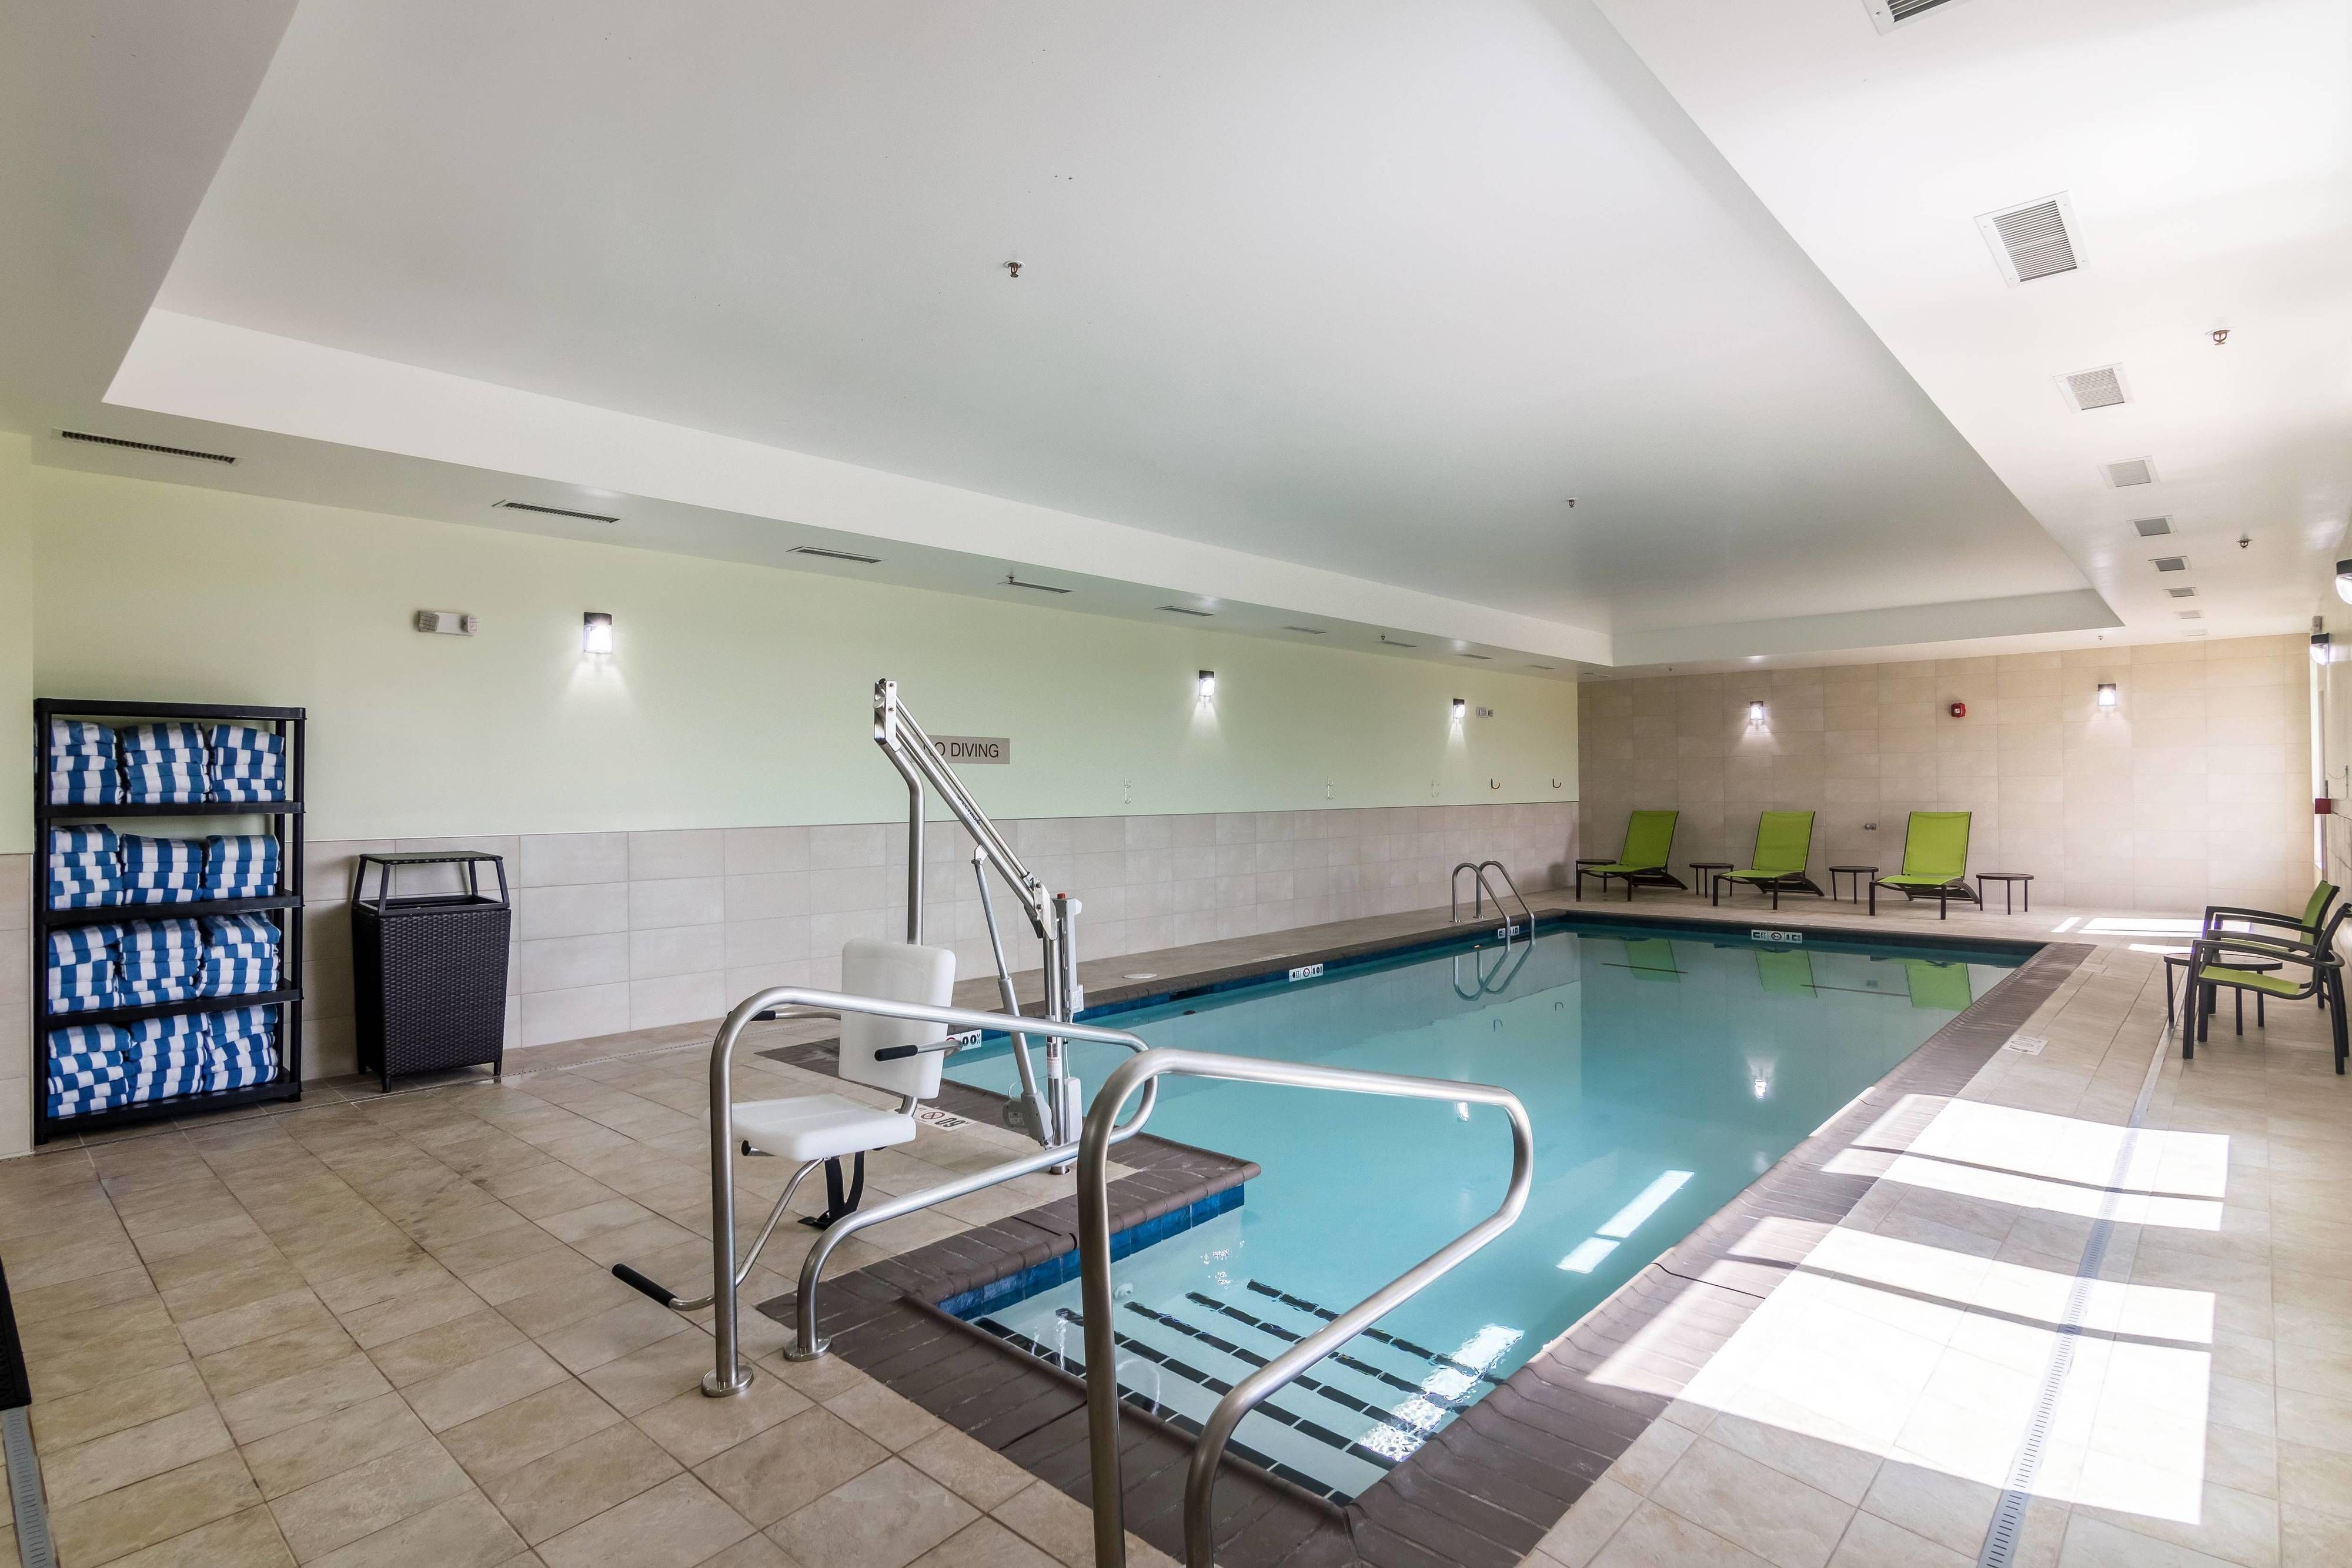 Springhill Suites Oklahoma City Downtown Bricktown Indoor Pool Holiday Happy Hotels Indoor Pool Springhill Suites